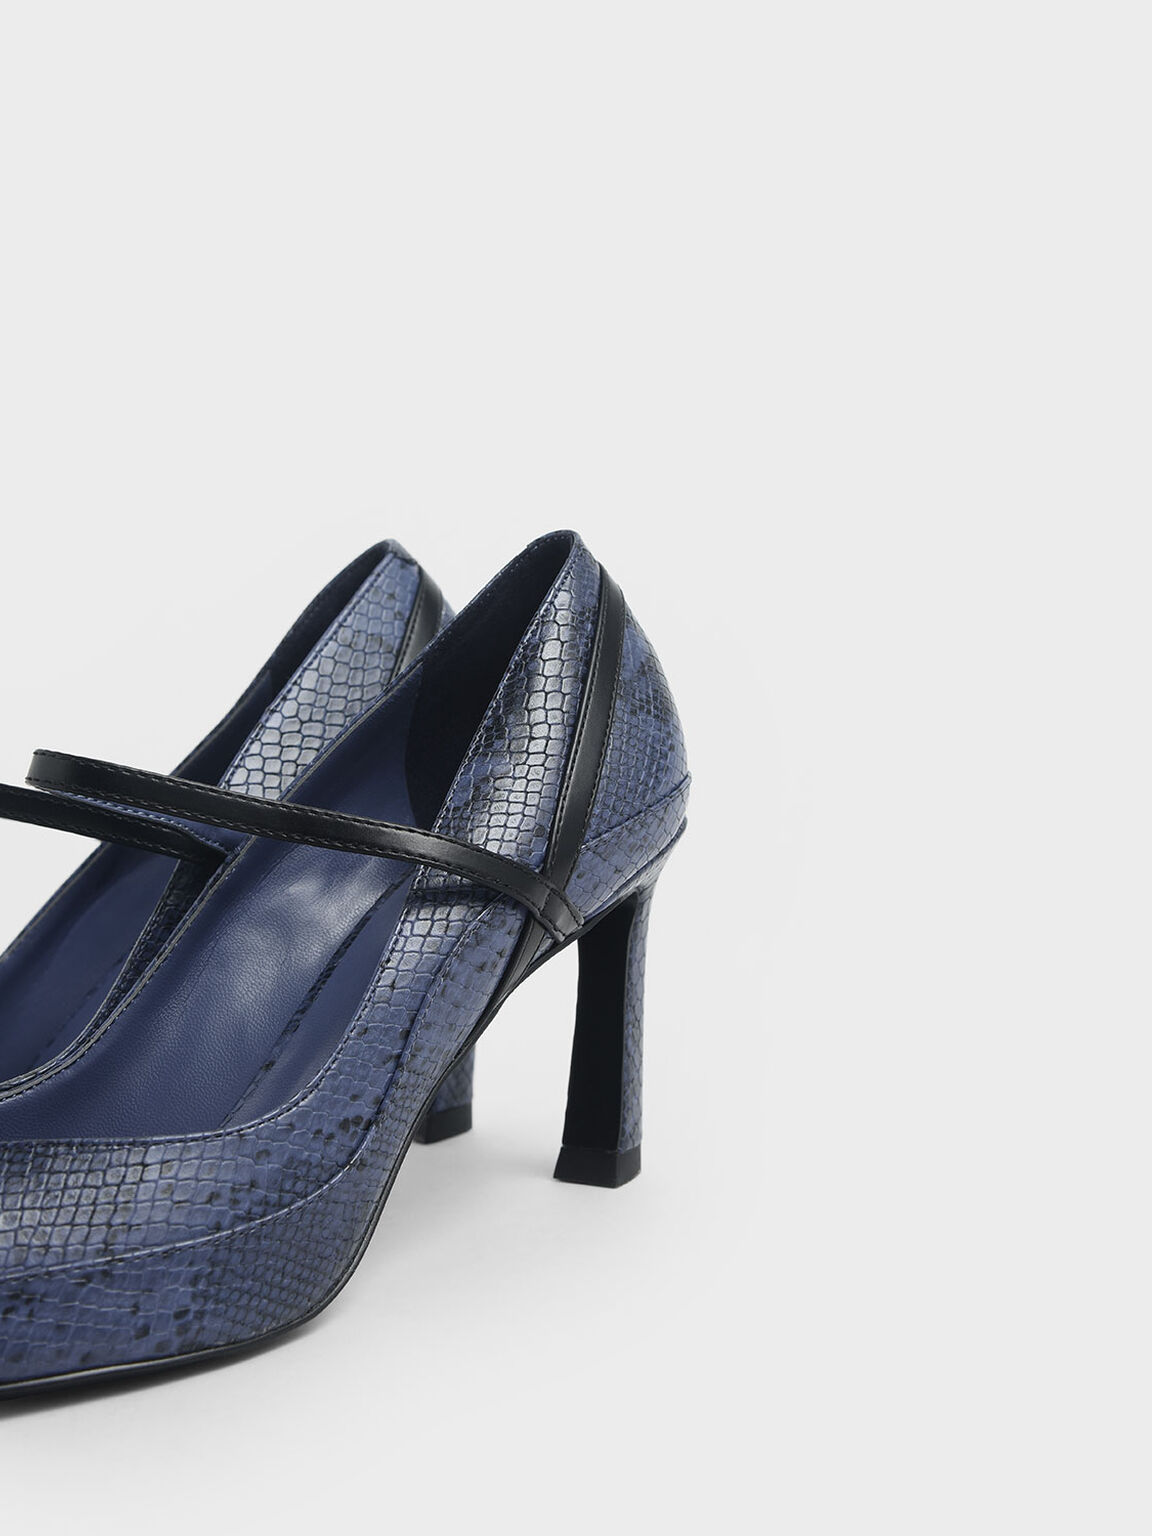 Snake Print Pointed Toe Mary Jane Sculptural Heels, Blue, hi-res